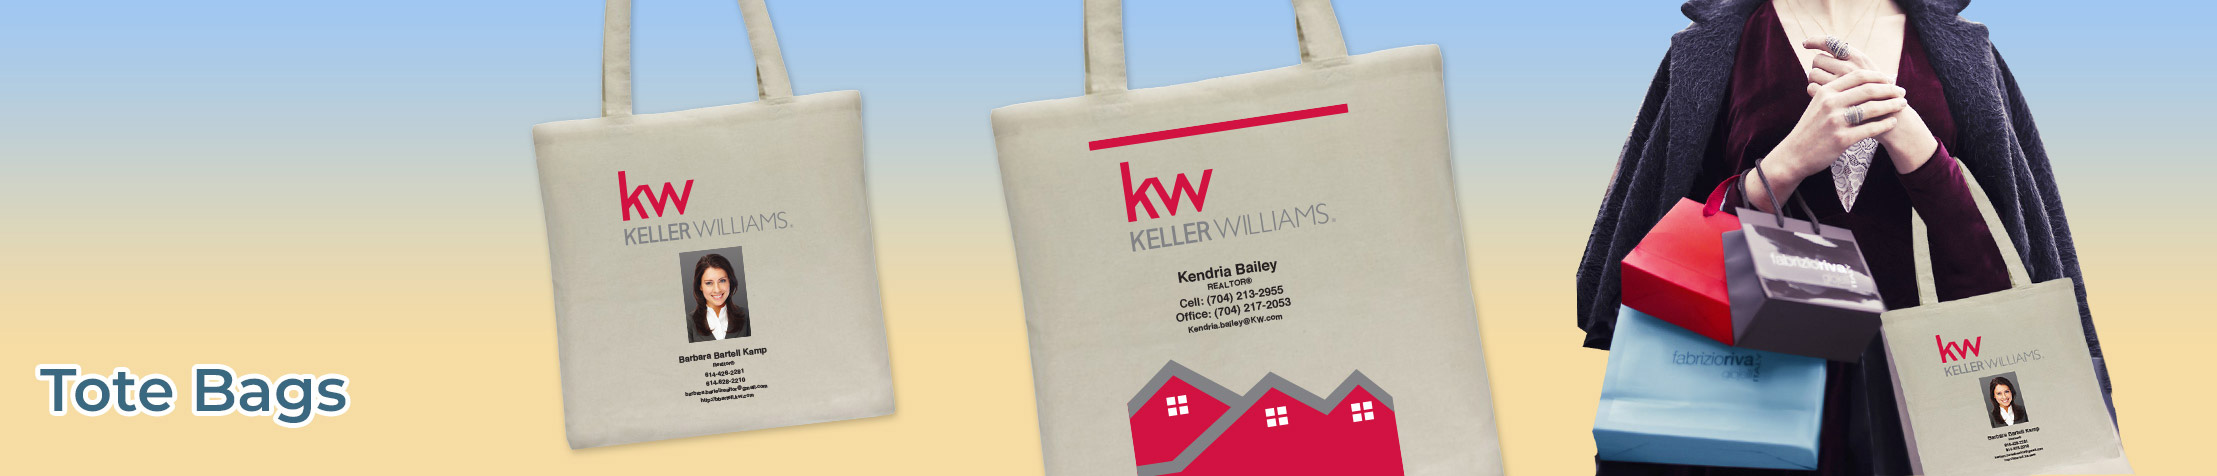 Keller Williams Real Estate Tote Bags - KW approved vendor personalized realtor promotional products | BestPrintBuy.com